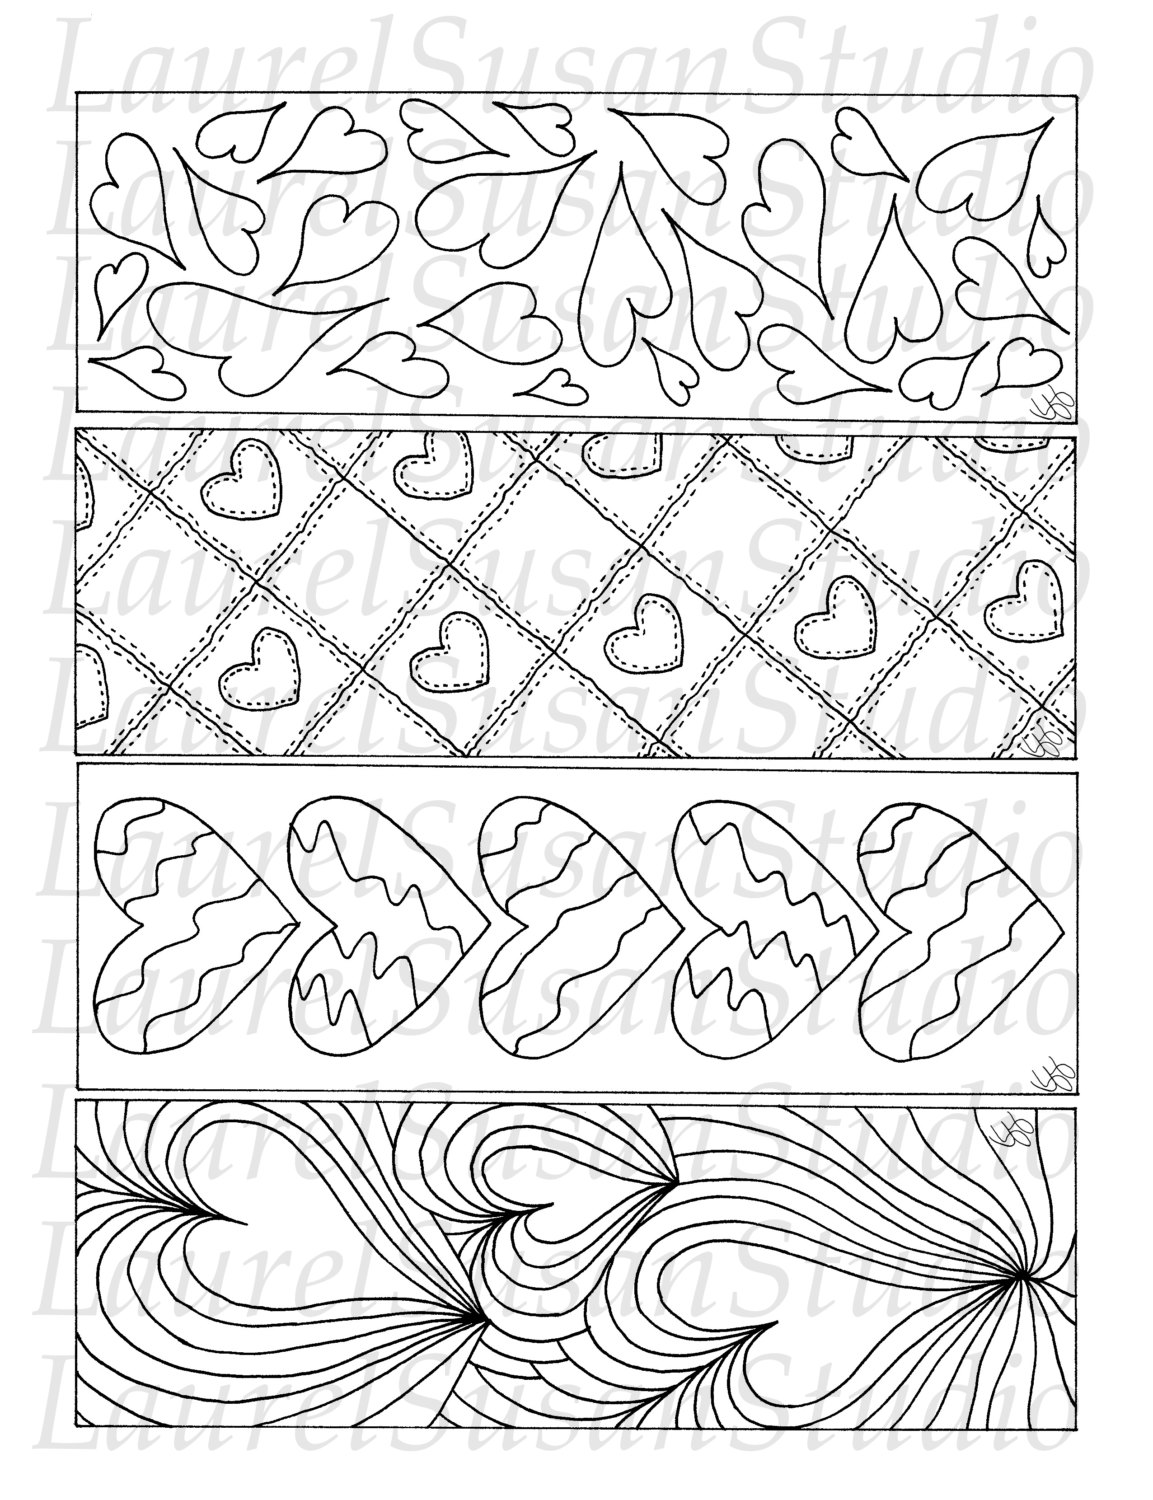 valentine bookmarks to color : Printable Bookmarks Valentine S Day Coloring Pages